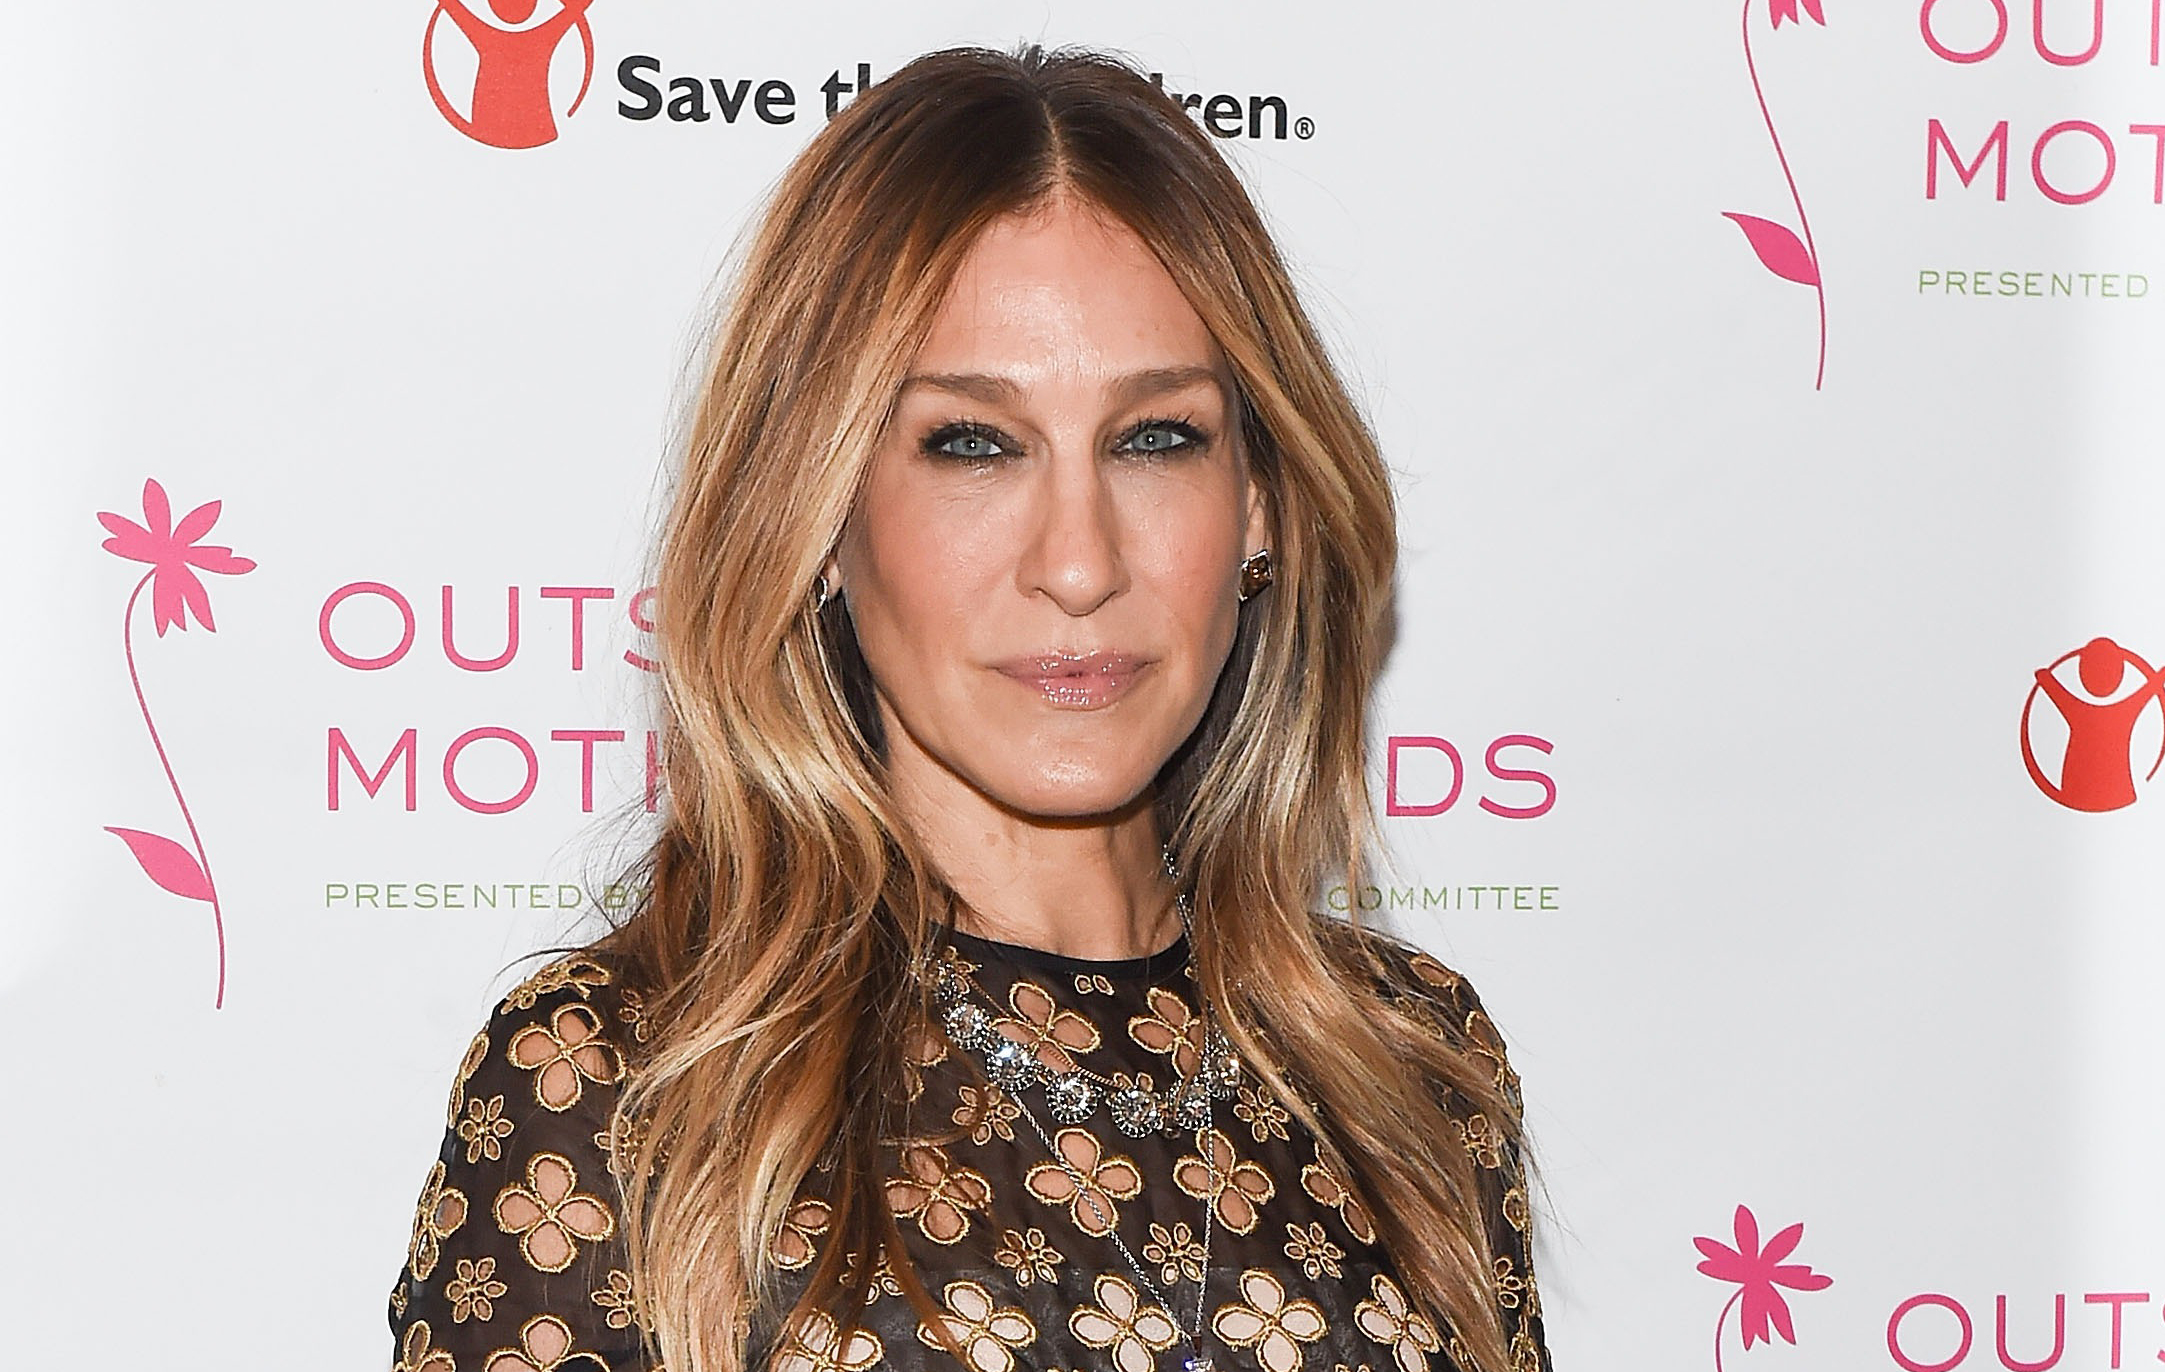 Carrie Bradshaw's fashion fantasies are realized: Sarah Jessica Parker is opening up her very own store